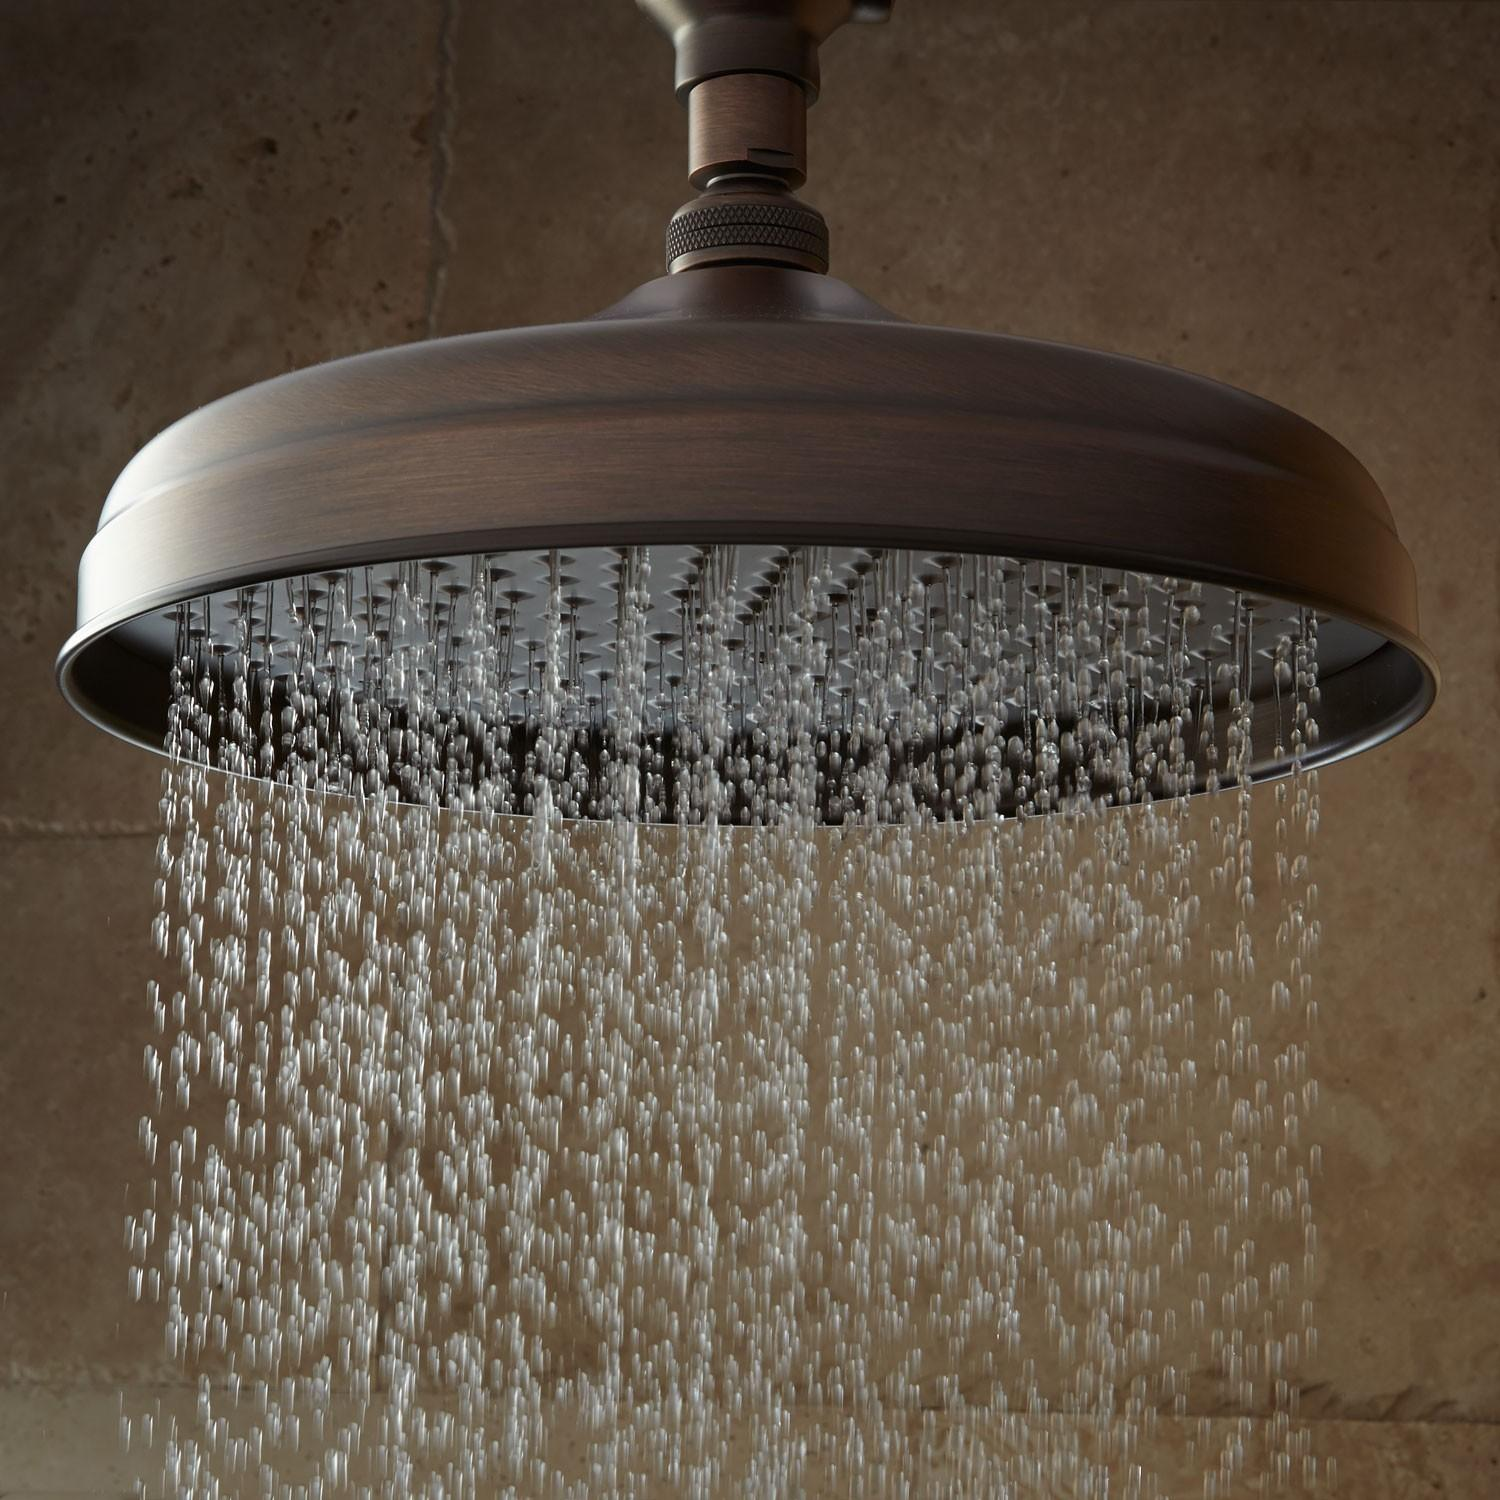 Luxurious Brushed Bronze Vintage Style Ceiling Rain Shower